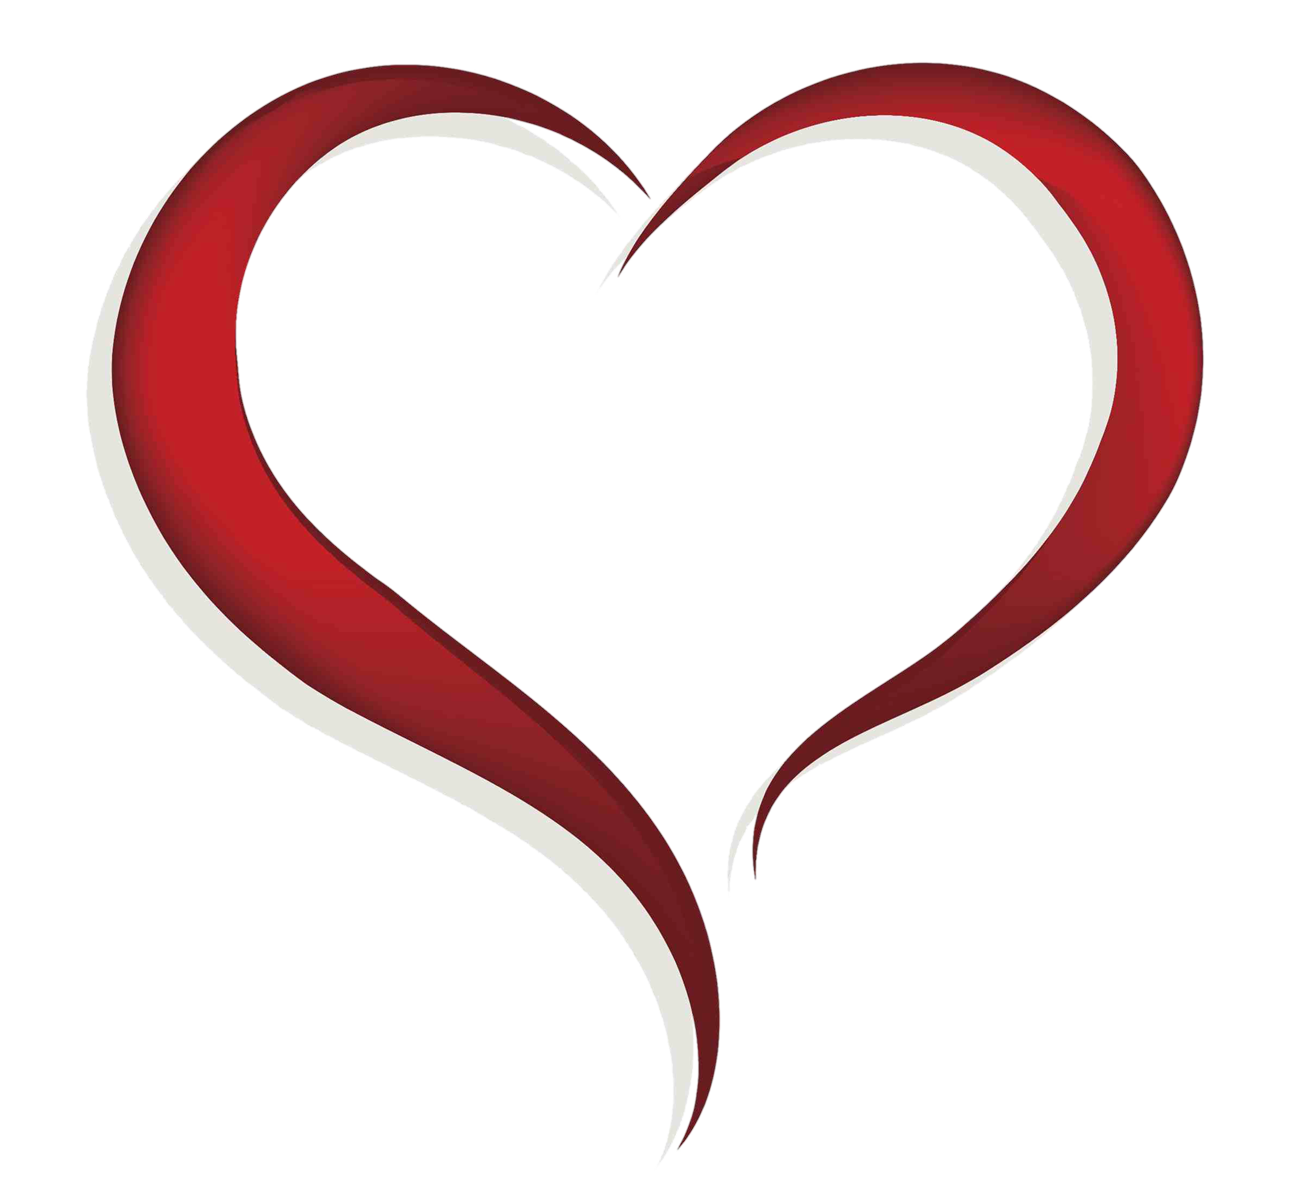 Heart clip art png. Home objects clipart image